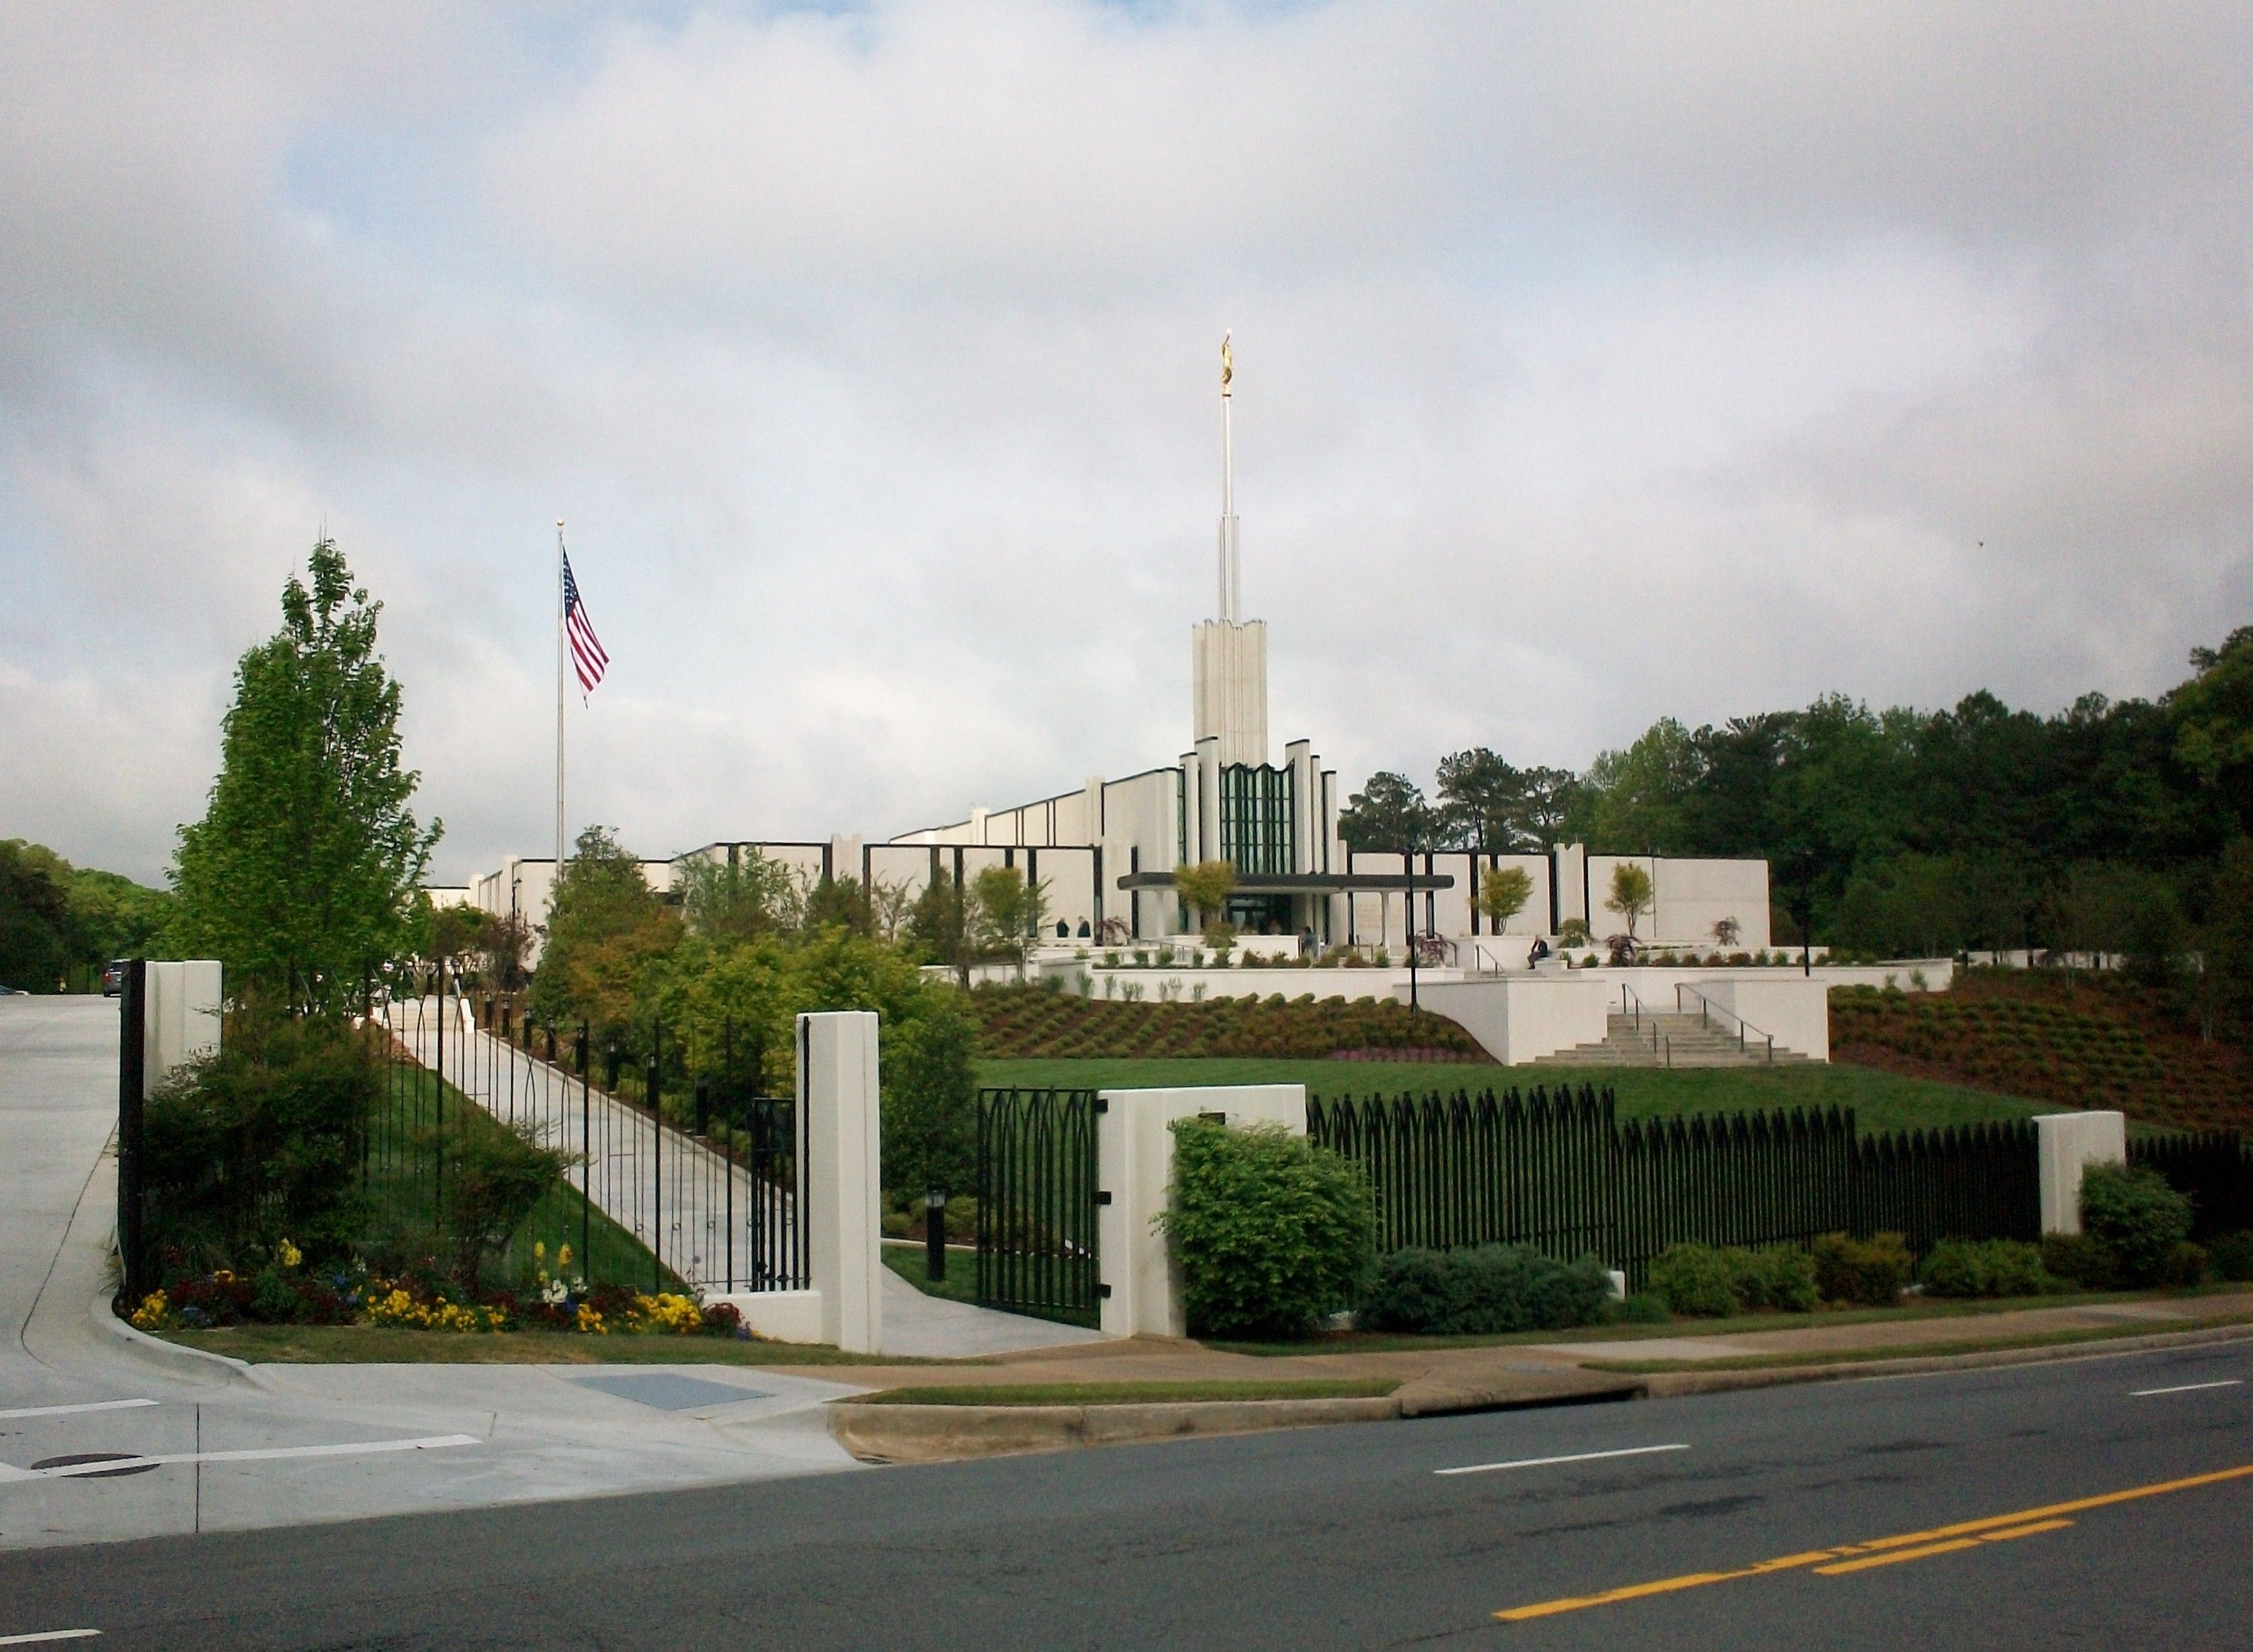 A view of the Atlanta Georgia Temple and grounds from the street.